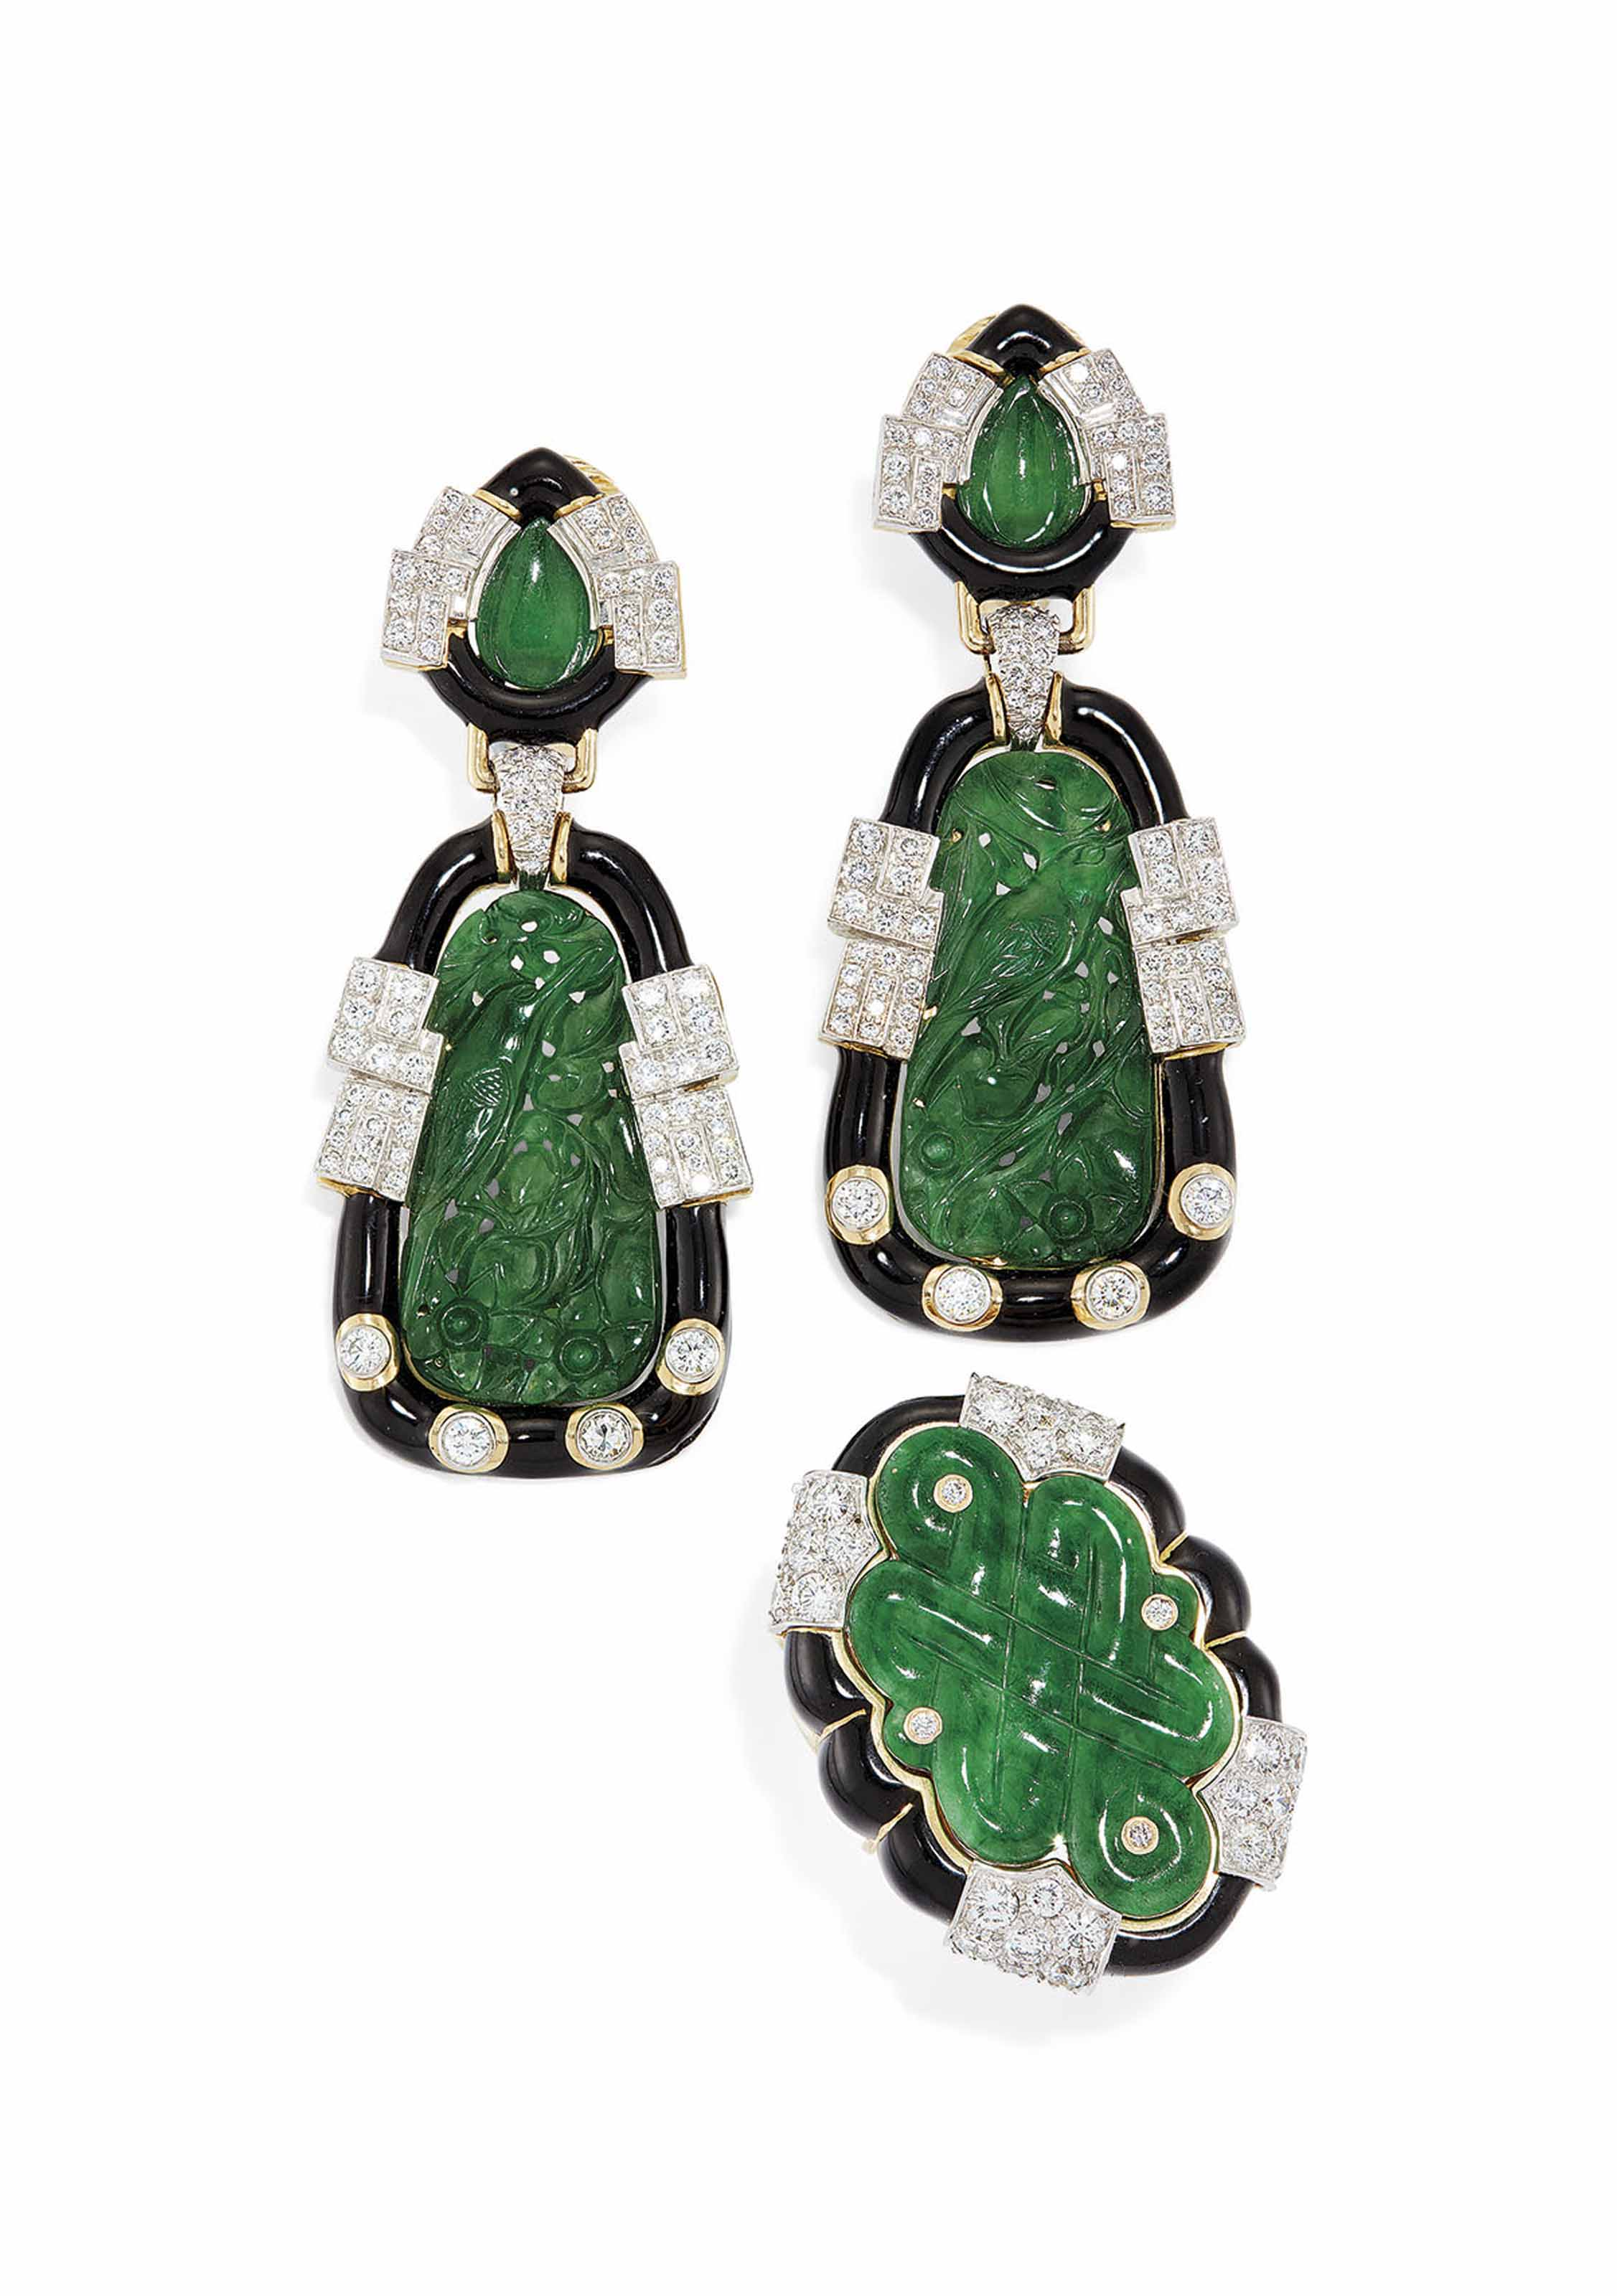 couture to las designers know show fine founrae trade jewelry webb vegas new from the in david article vogue best earrings